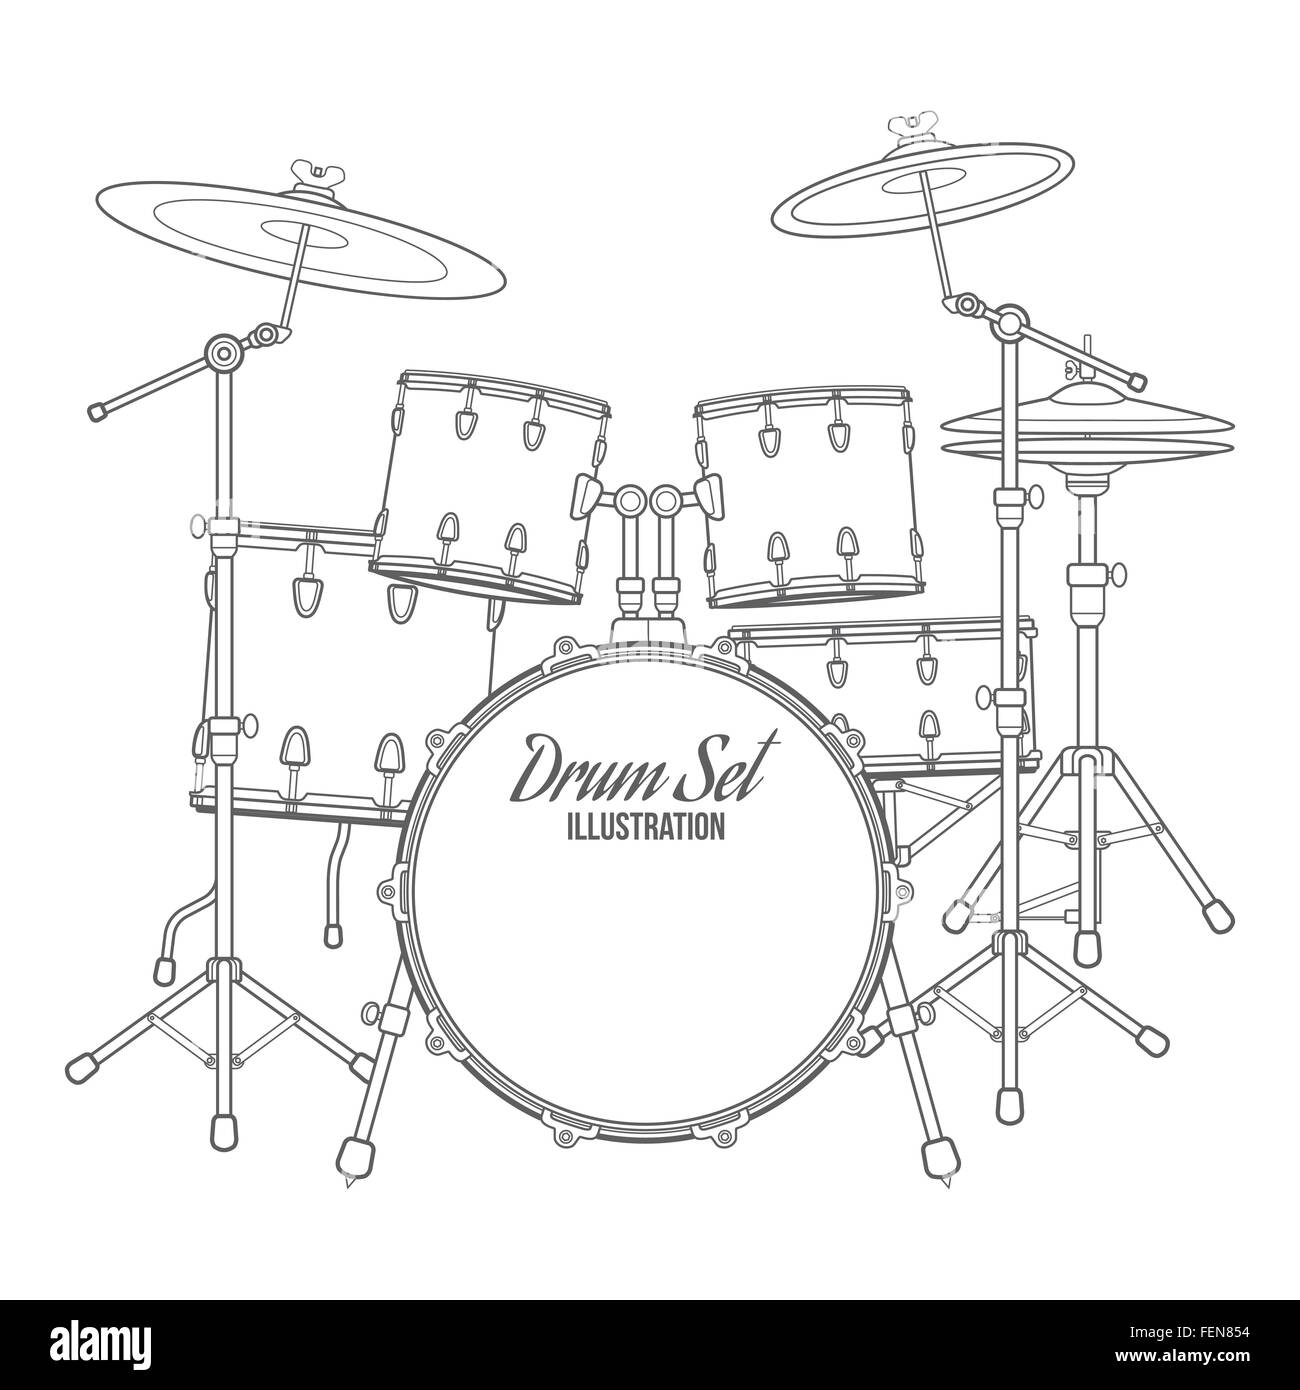 hight resolution of vector dark outline drum set on white background bass tom tom ride black and white diagram of a drum set including cymbals high hat